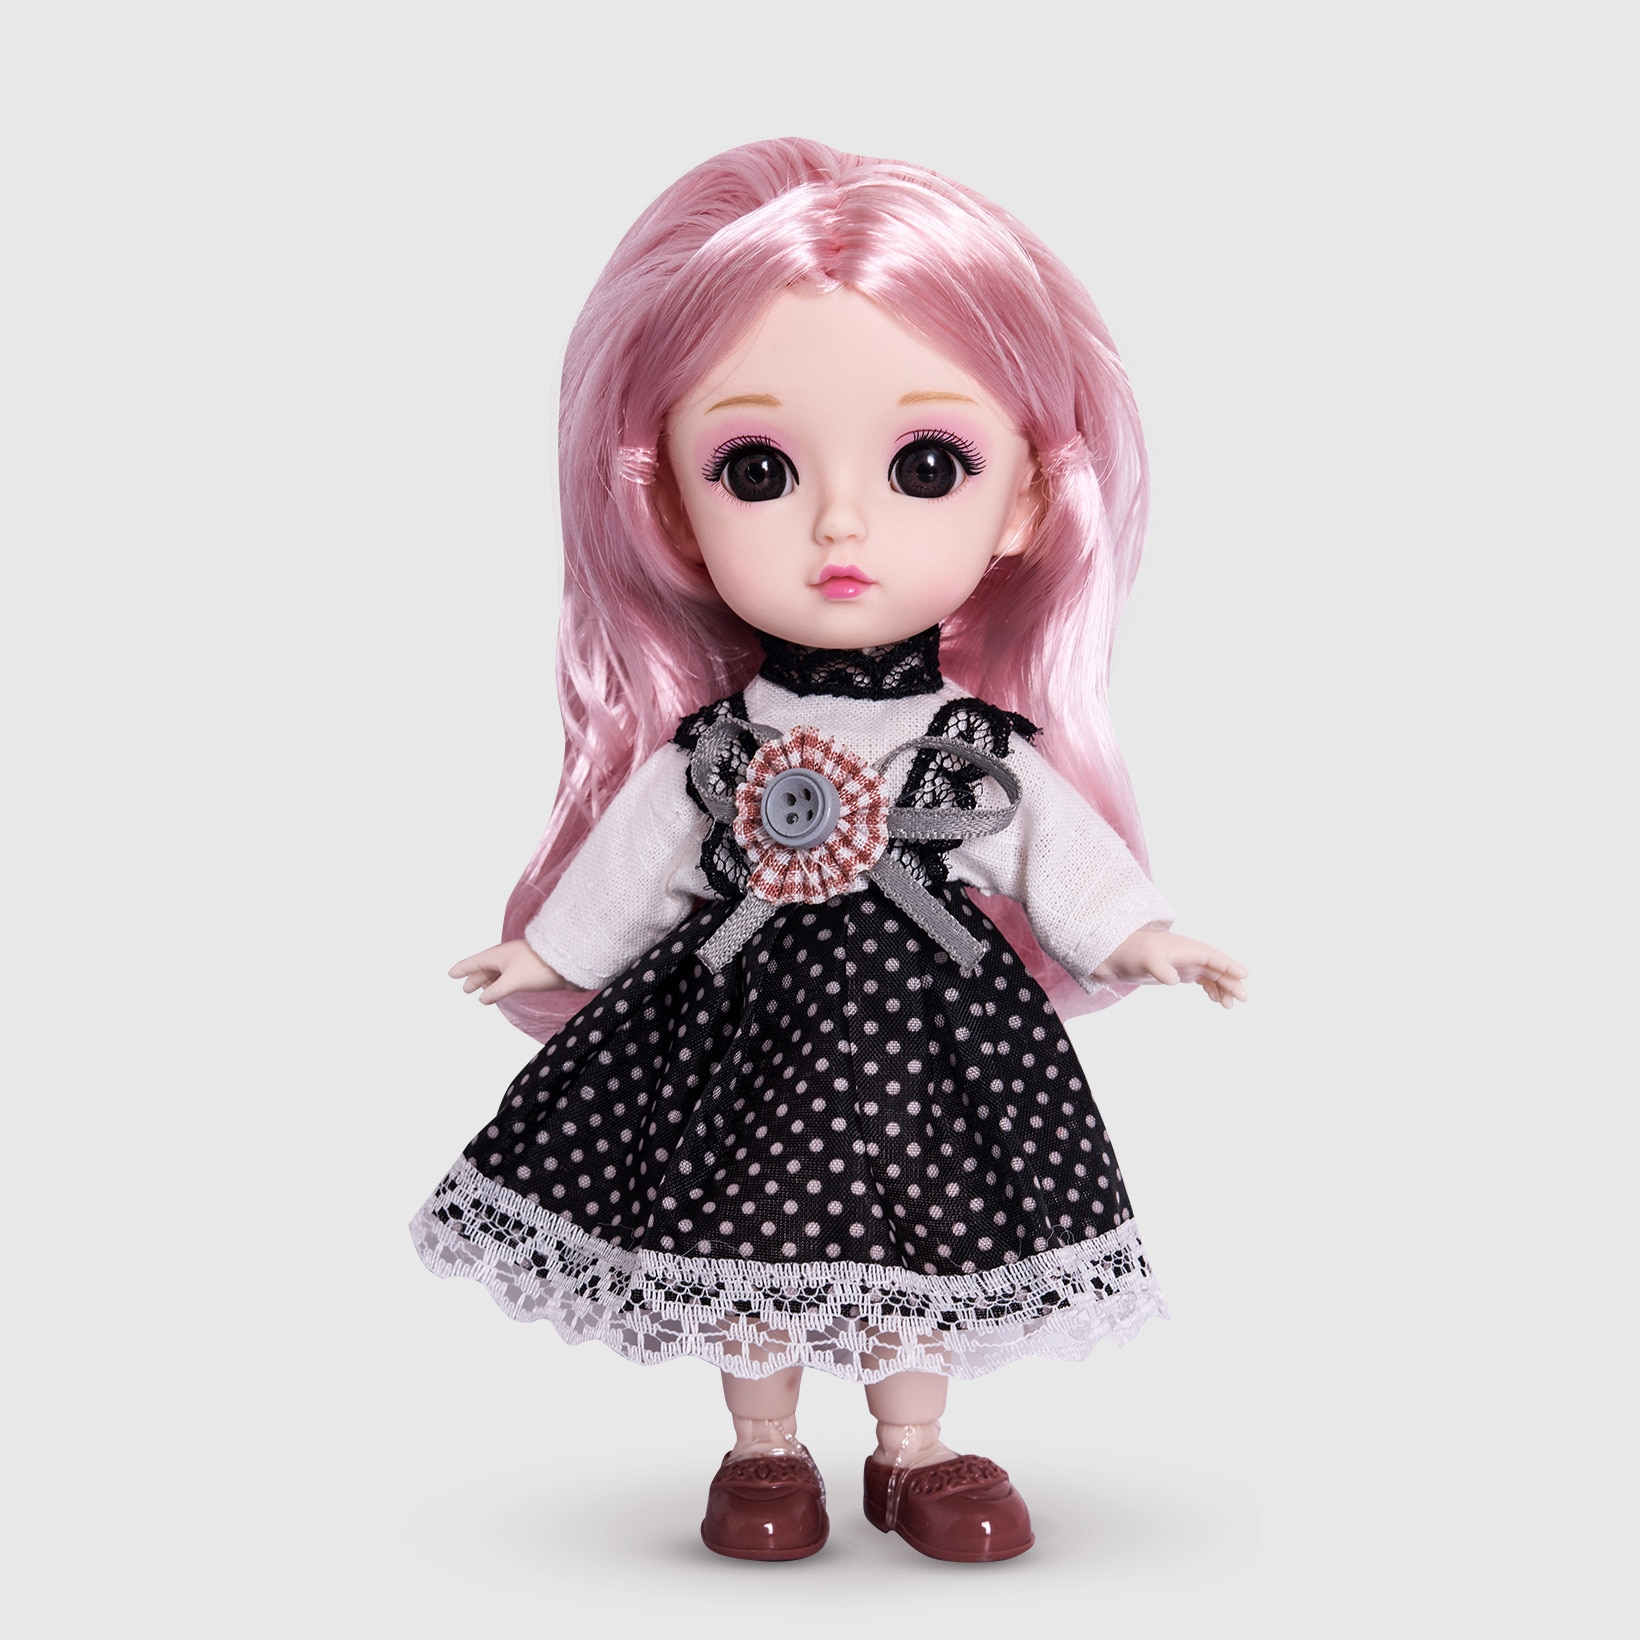 The Best Gift for Children LOFEA 6-inch Dress-up Doll Dolls and Girls Birthday Princess Gifts